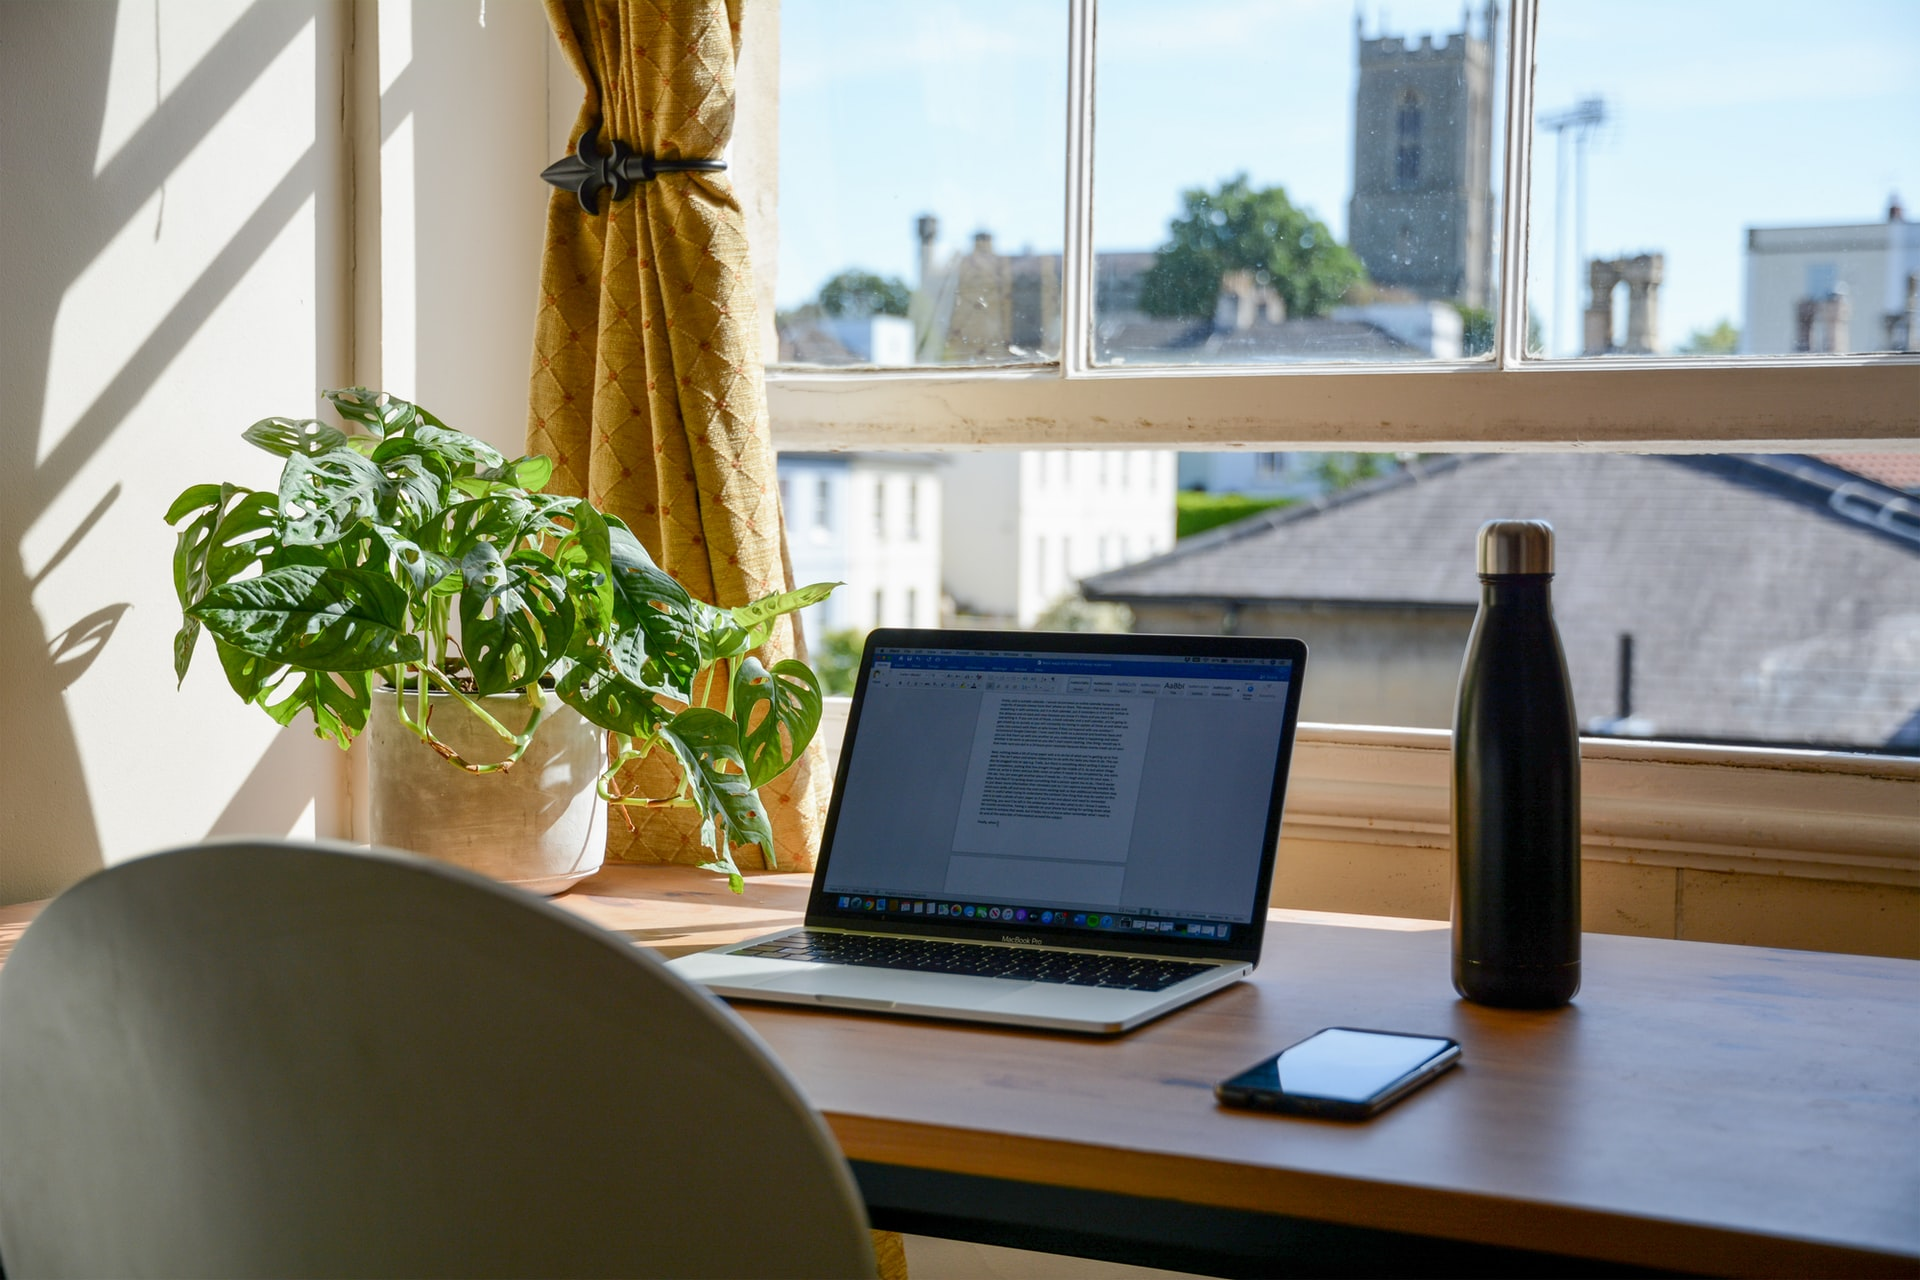 working from home set up: desk, laptop, plan, water bottle, phone